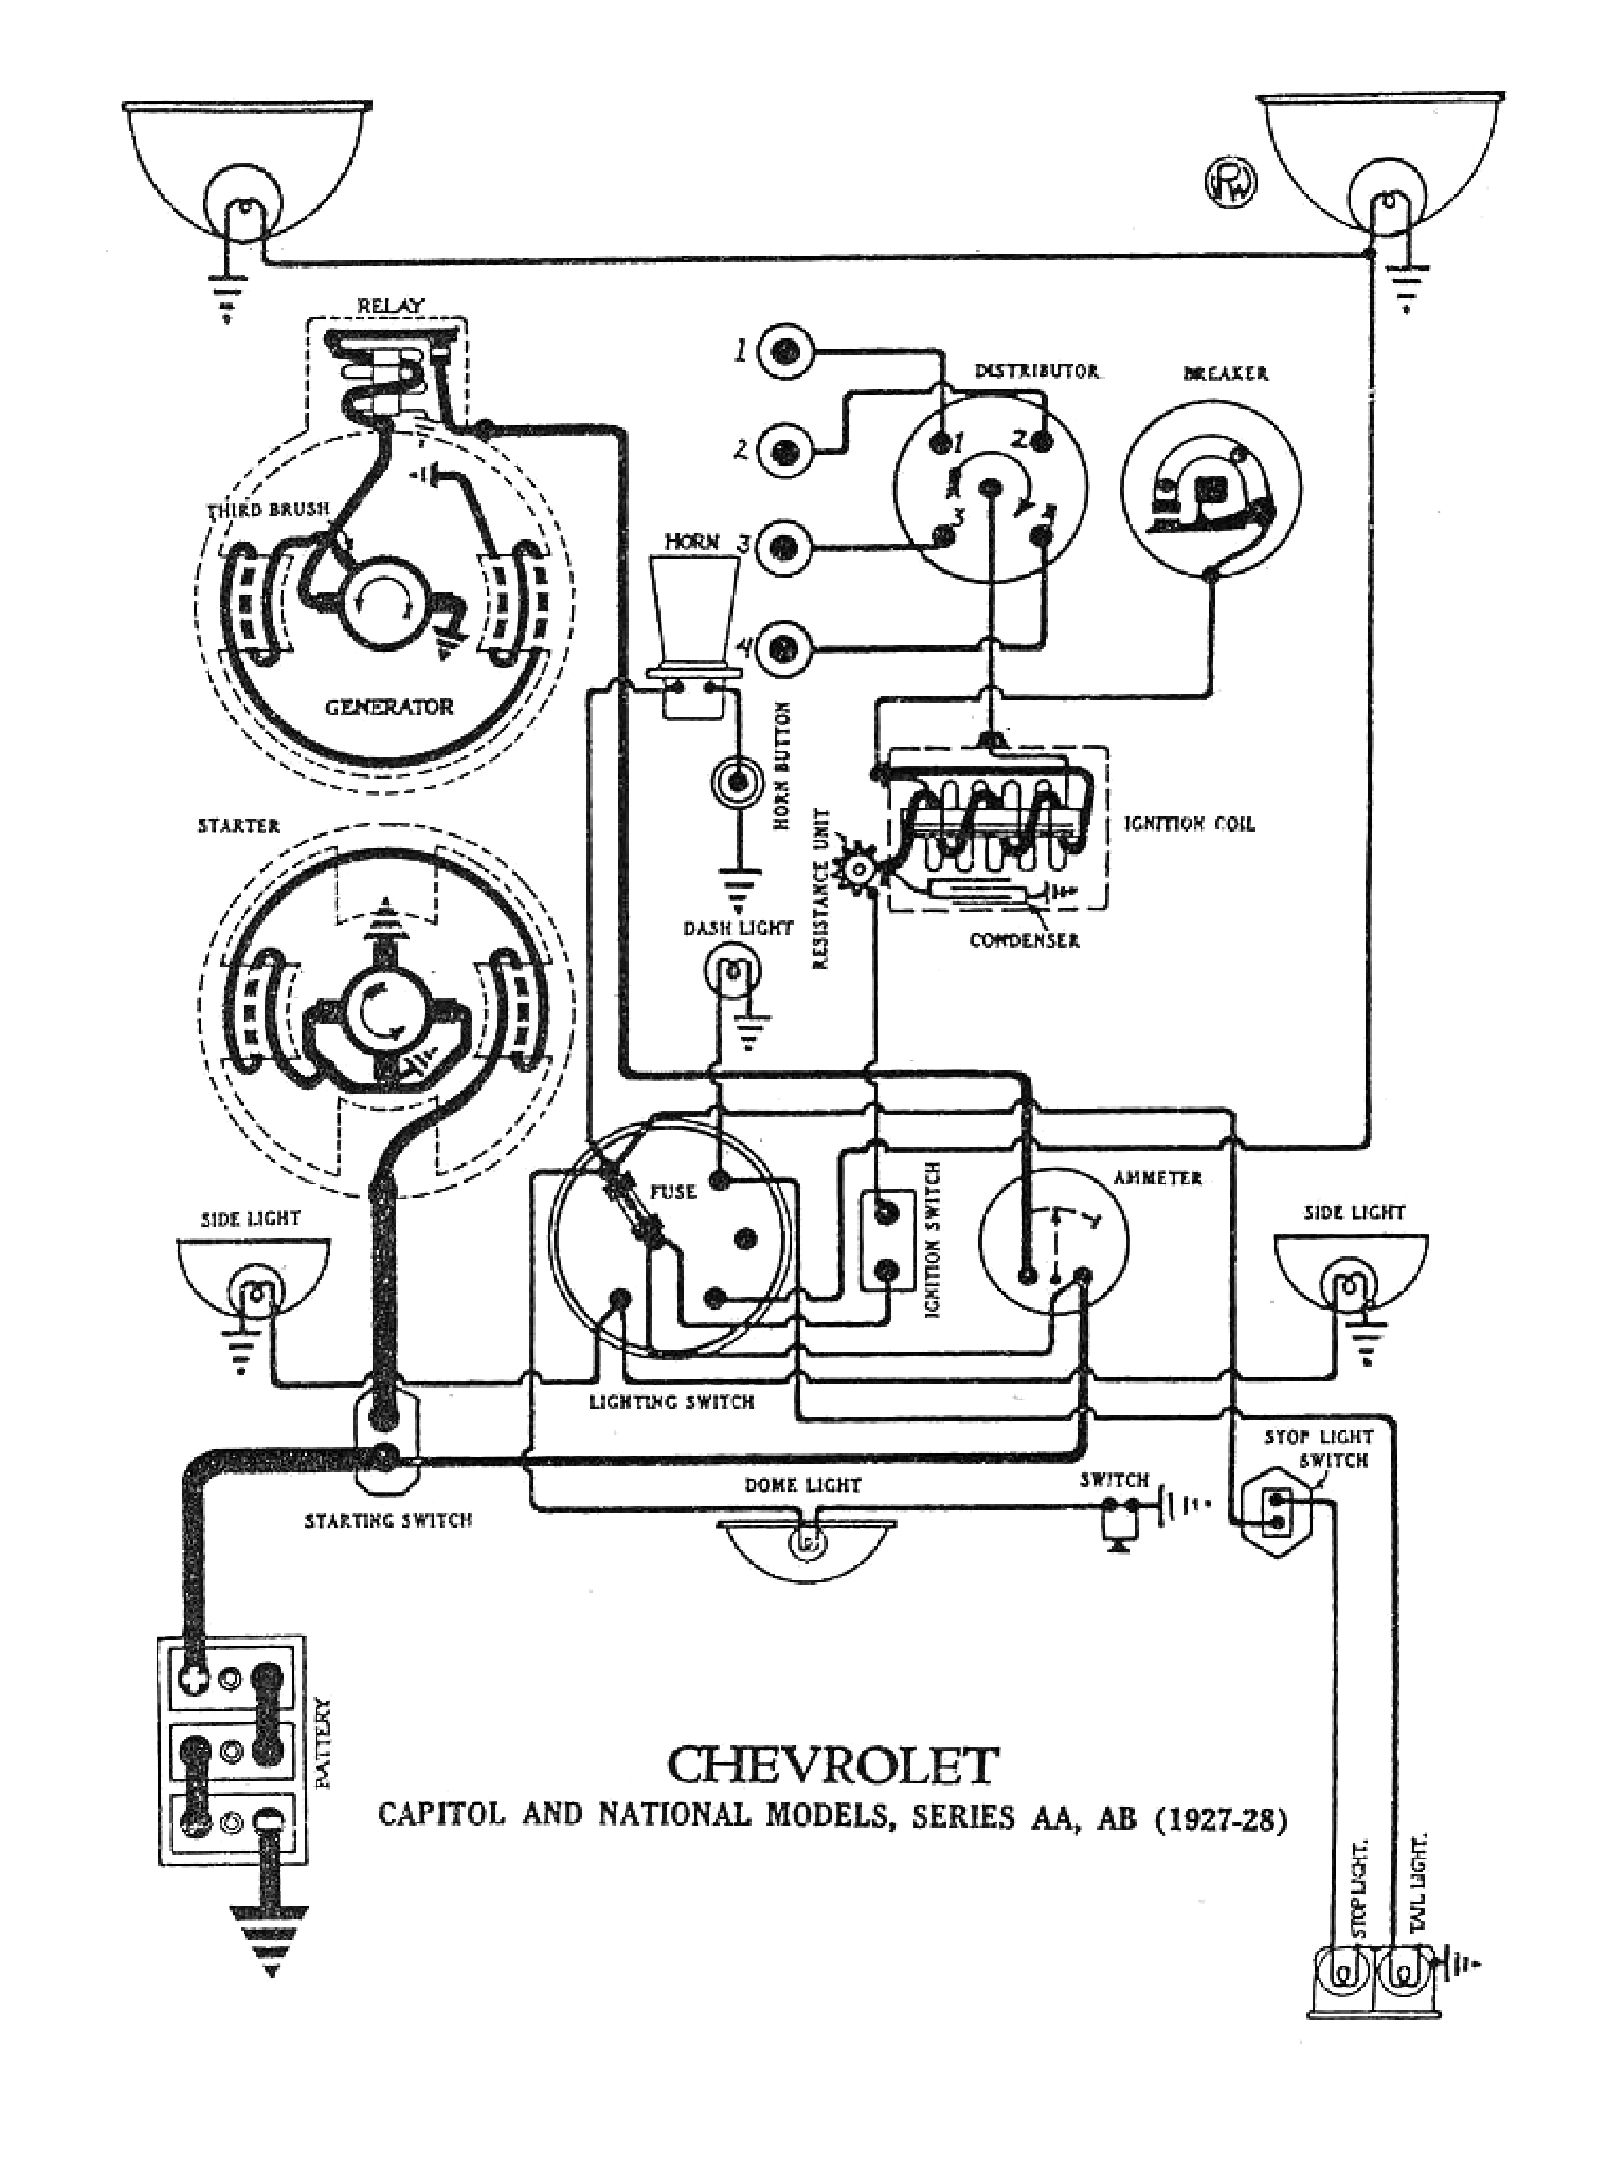 Moreover Chevy Truck Wiring Diagram On 1946 Hyundai Radio Harness Diagrams 1927 Capitol National Models 1928